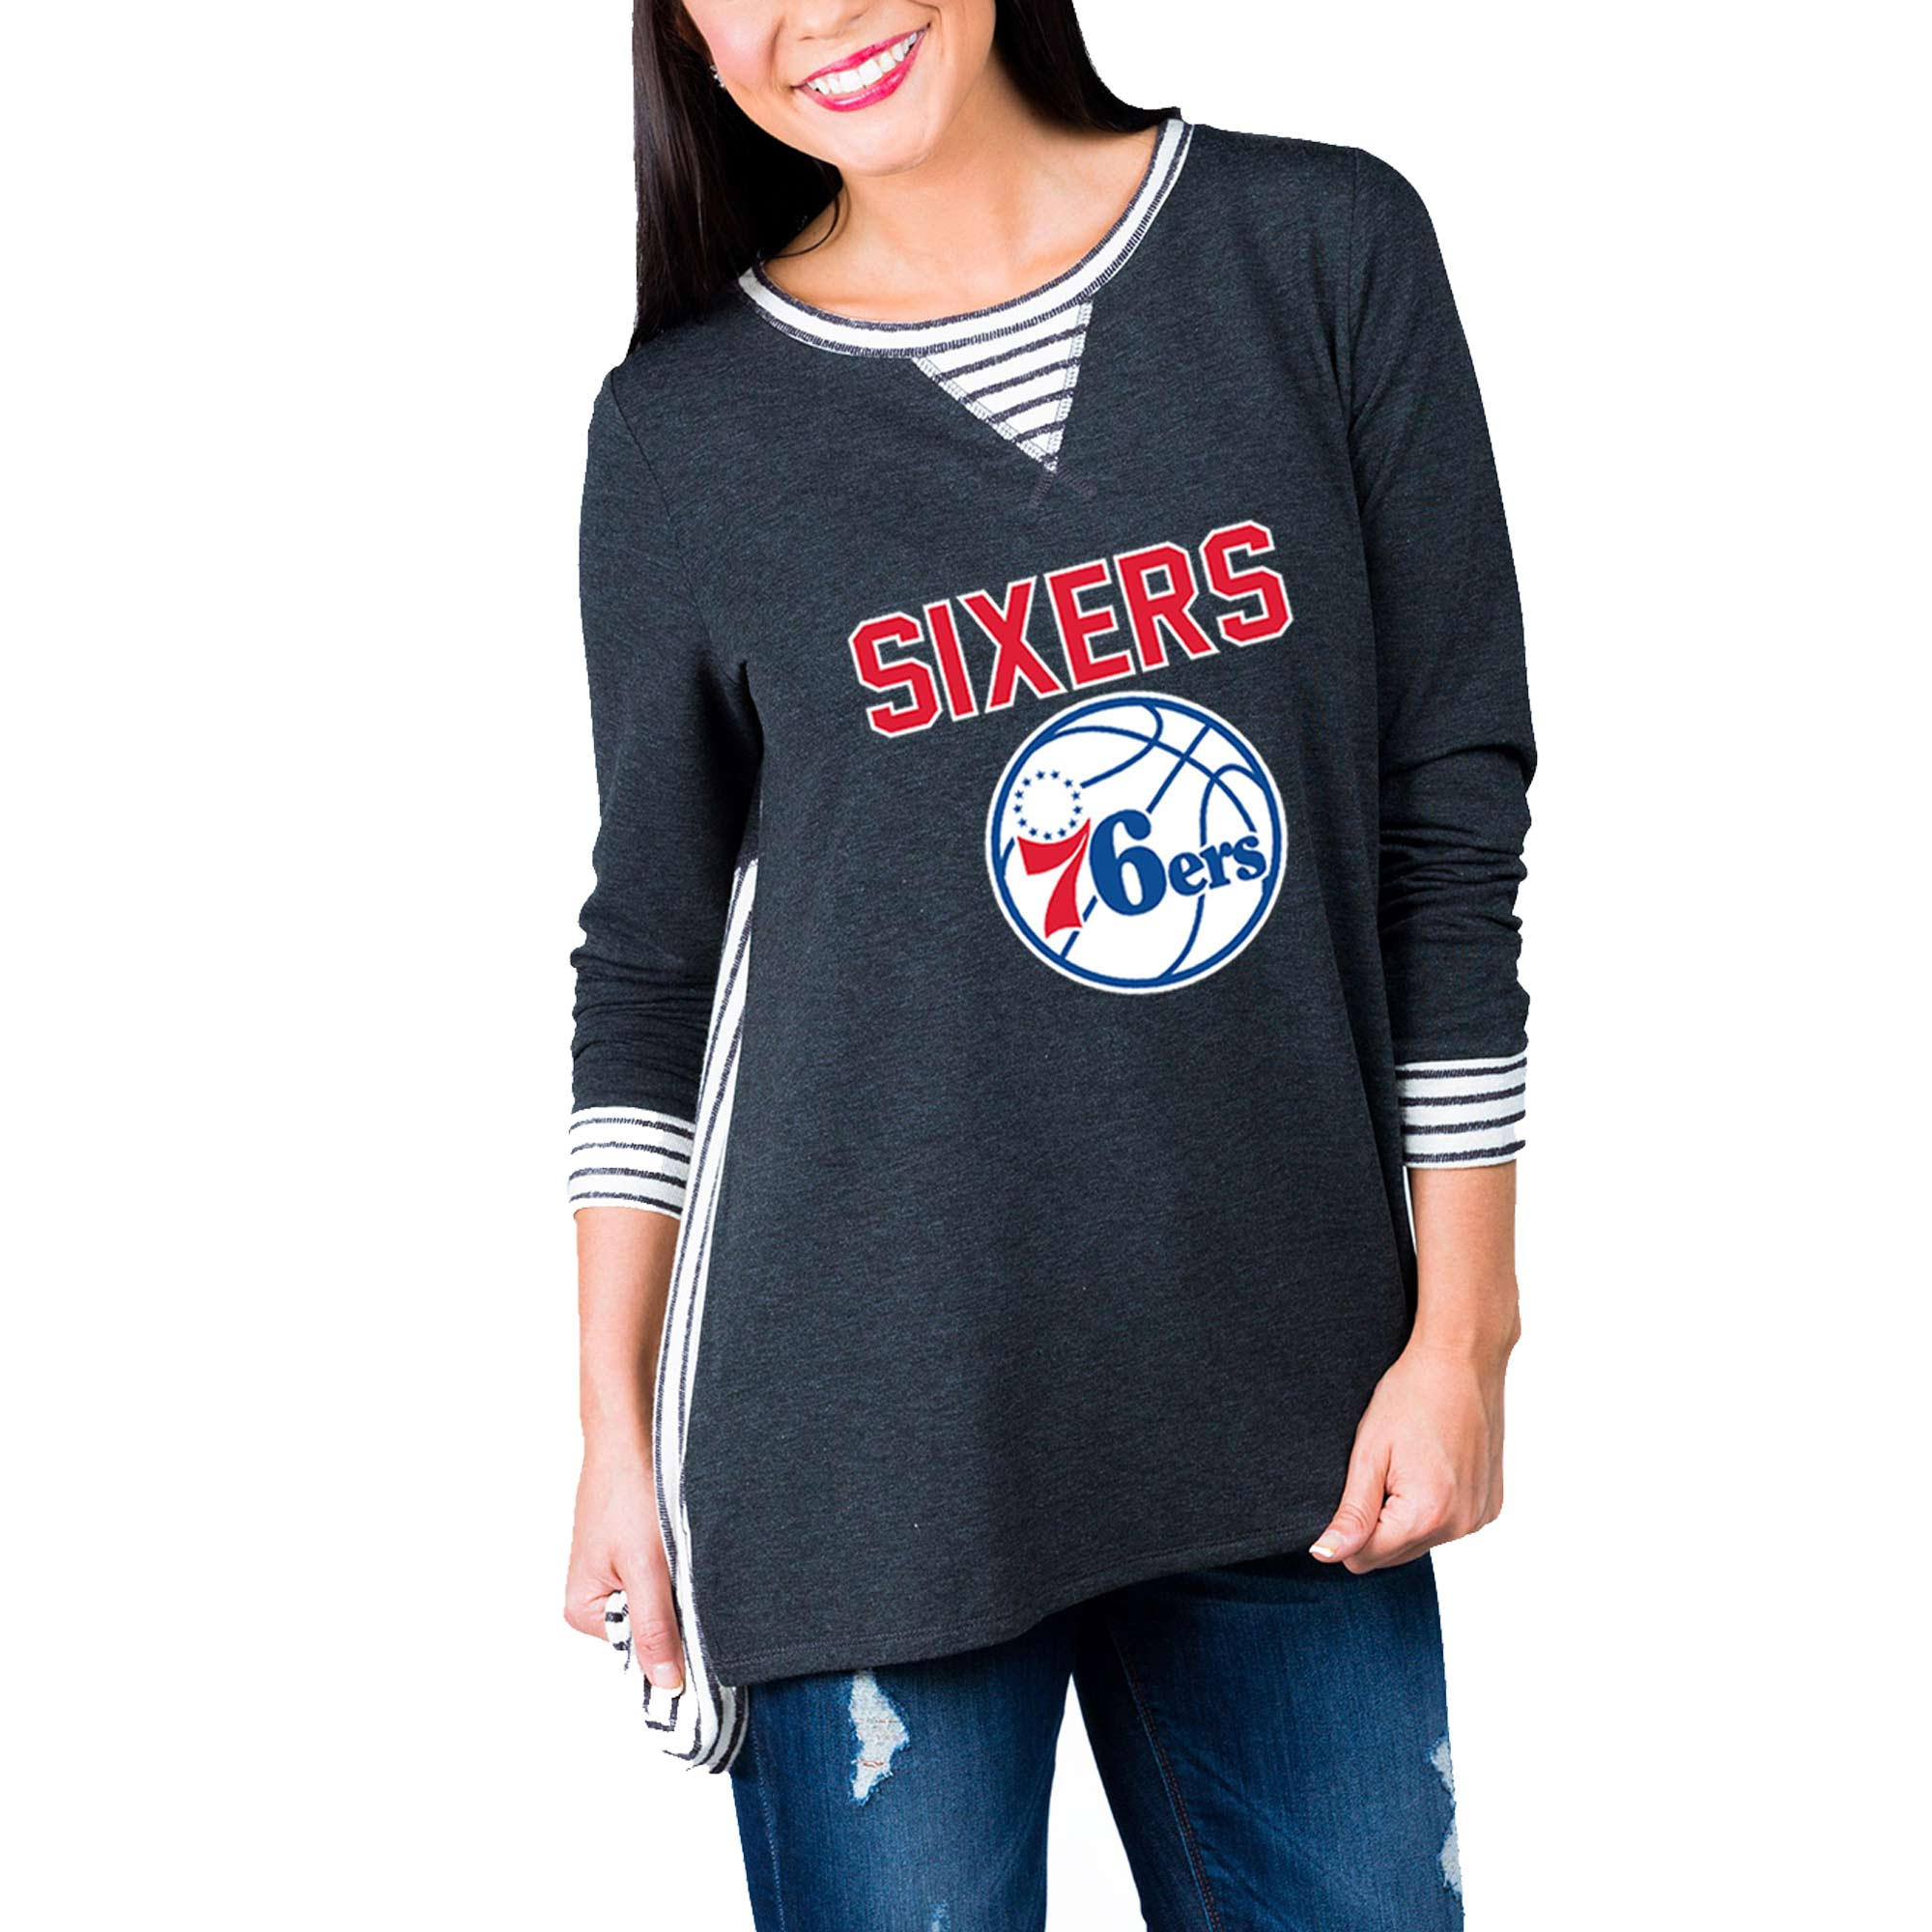 Philadelphia 76ers Women's Striped Panel Oversized Long Sleeve Tri-Blend Tunic Shirt - Charcoal